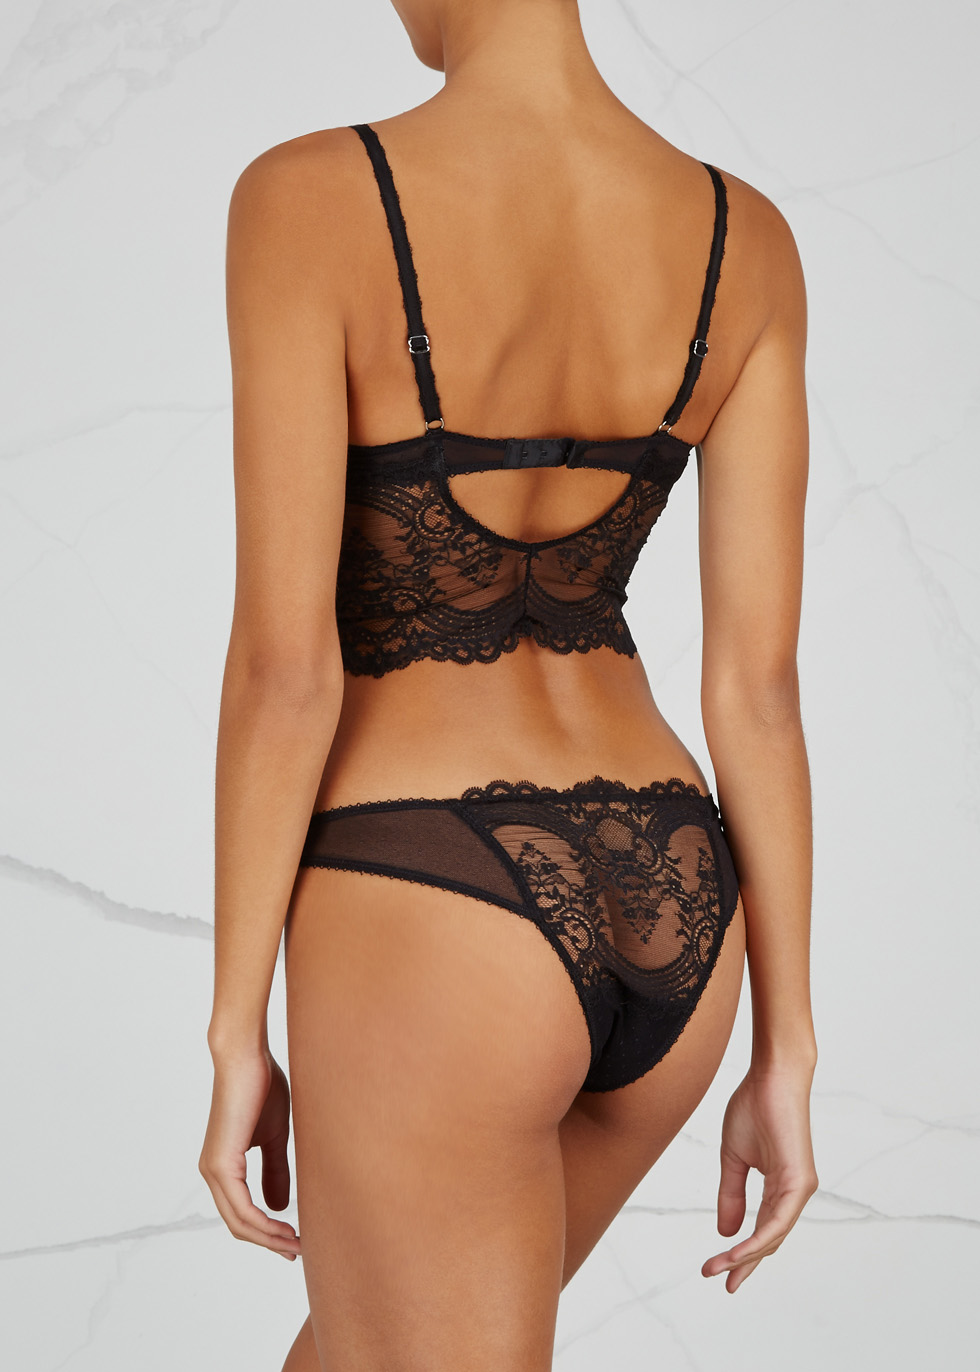 Chrystalle black lace briefs - Wacoal